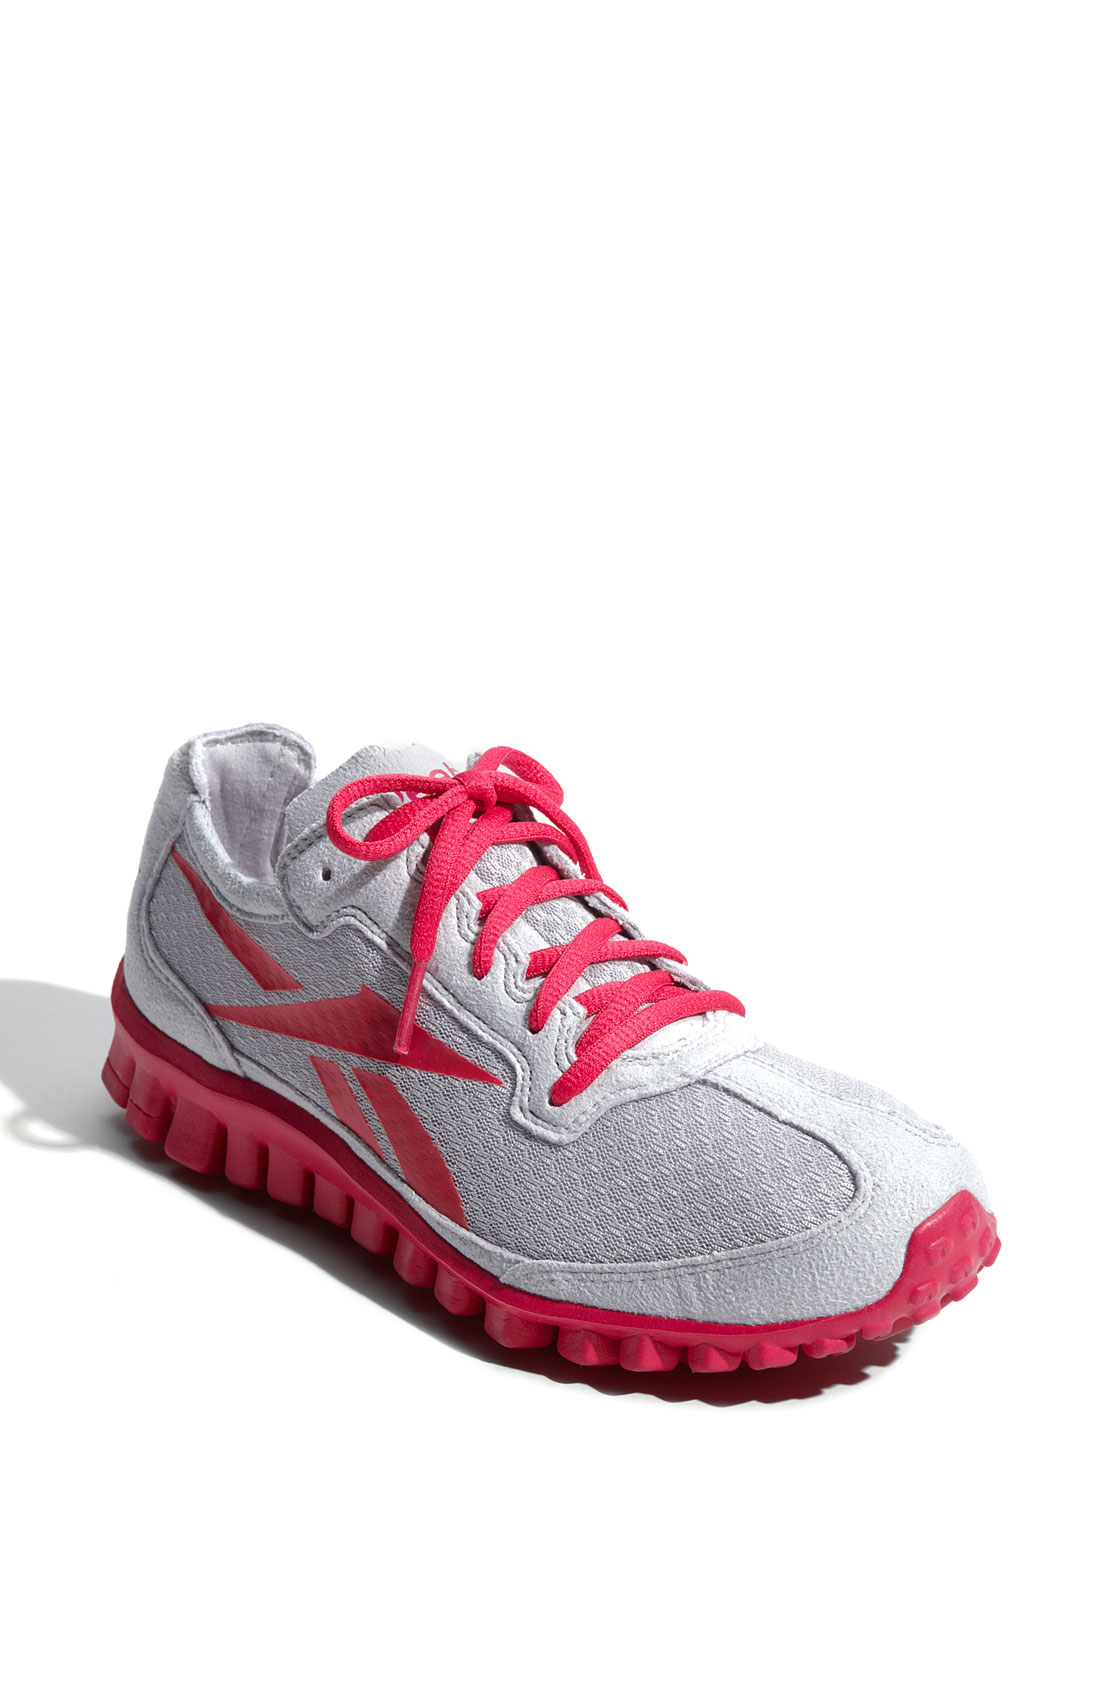 Reebok Realflex Minimal Running Shoe Women In Gray Grey